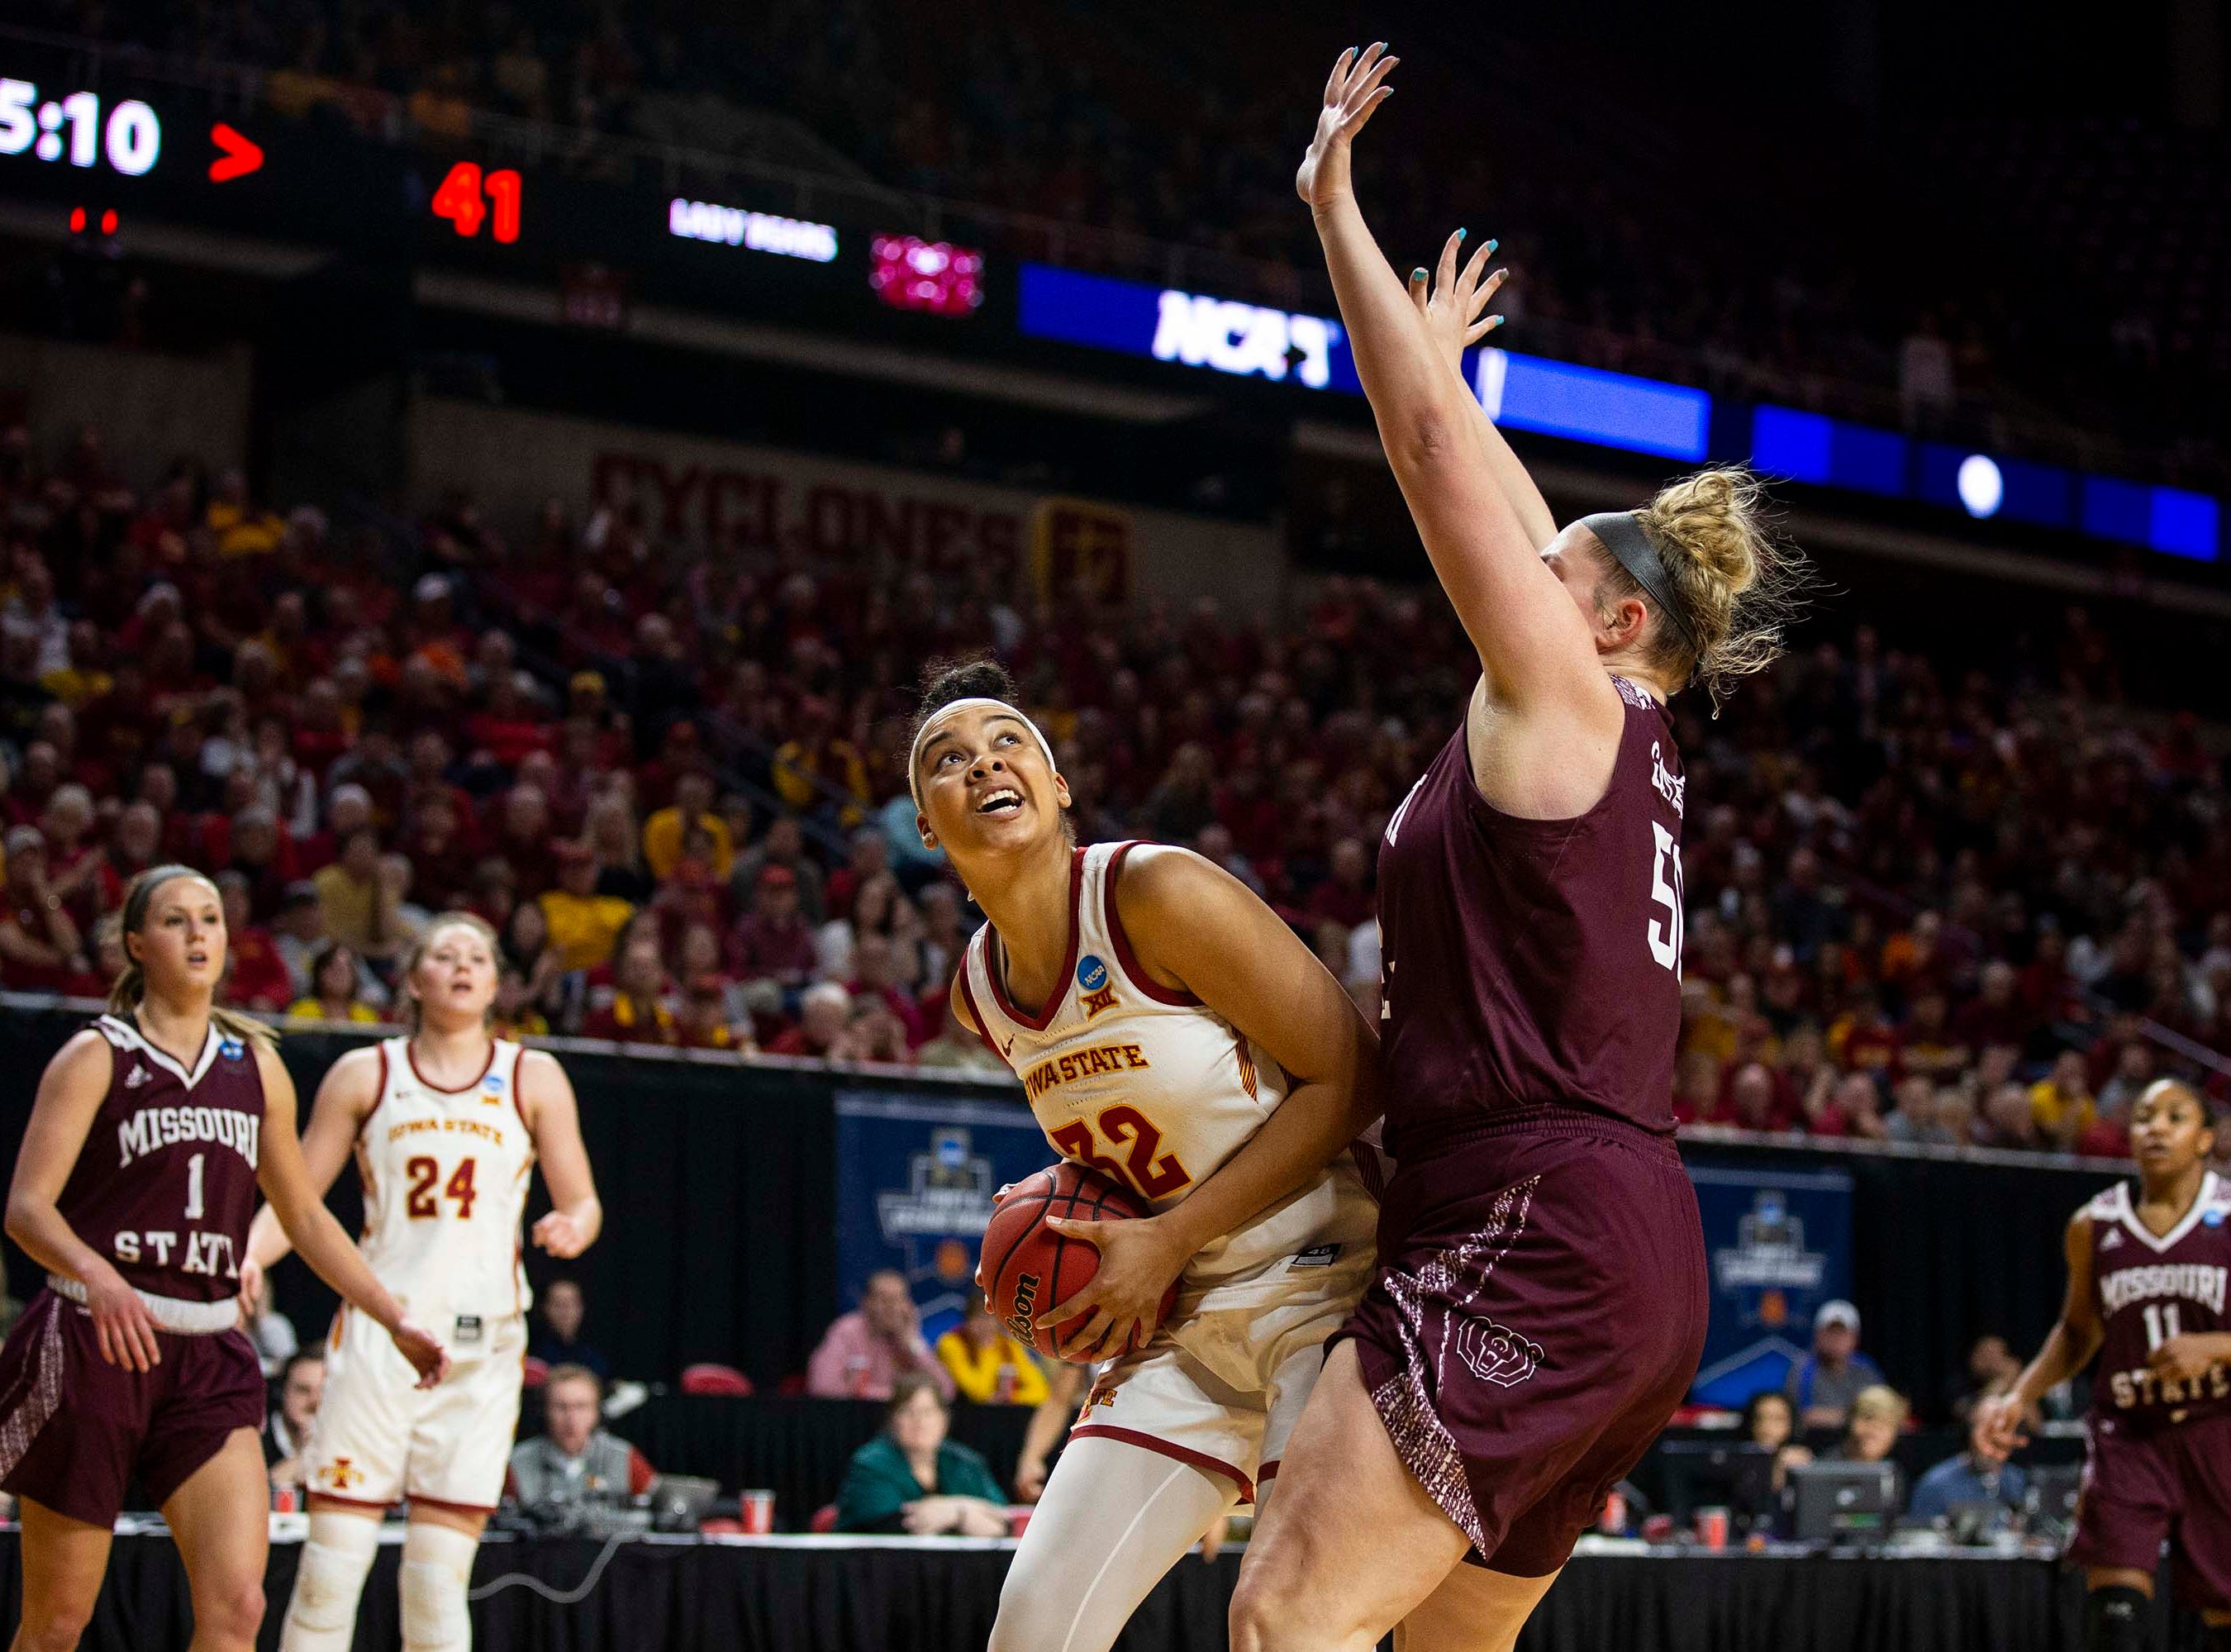 Iowa State's Meredith Burkhall looks to shoot during the NCAA Tournament second-round match-up between Iowa State and Missouri State on Monday, March 25, 2019, in Hilton Coliseum, in Ames, Iowa.